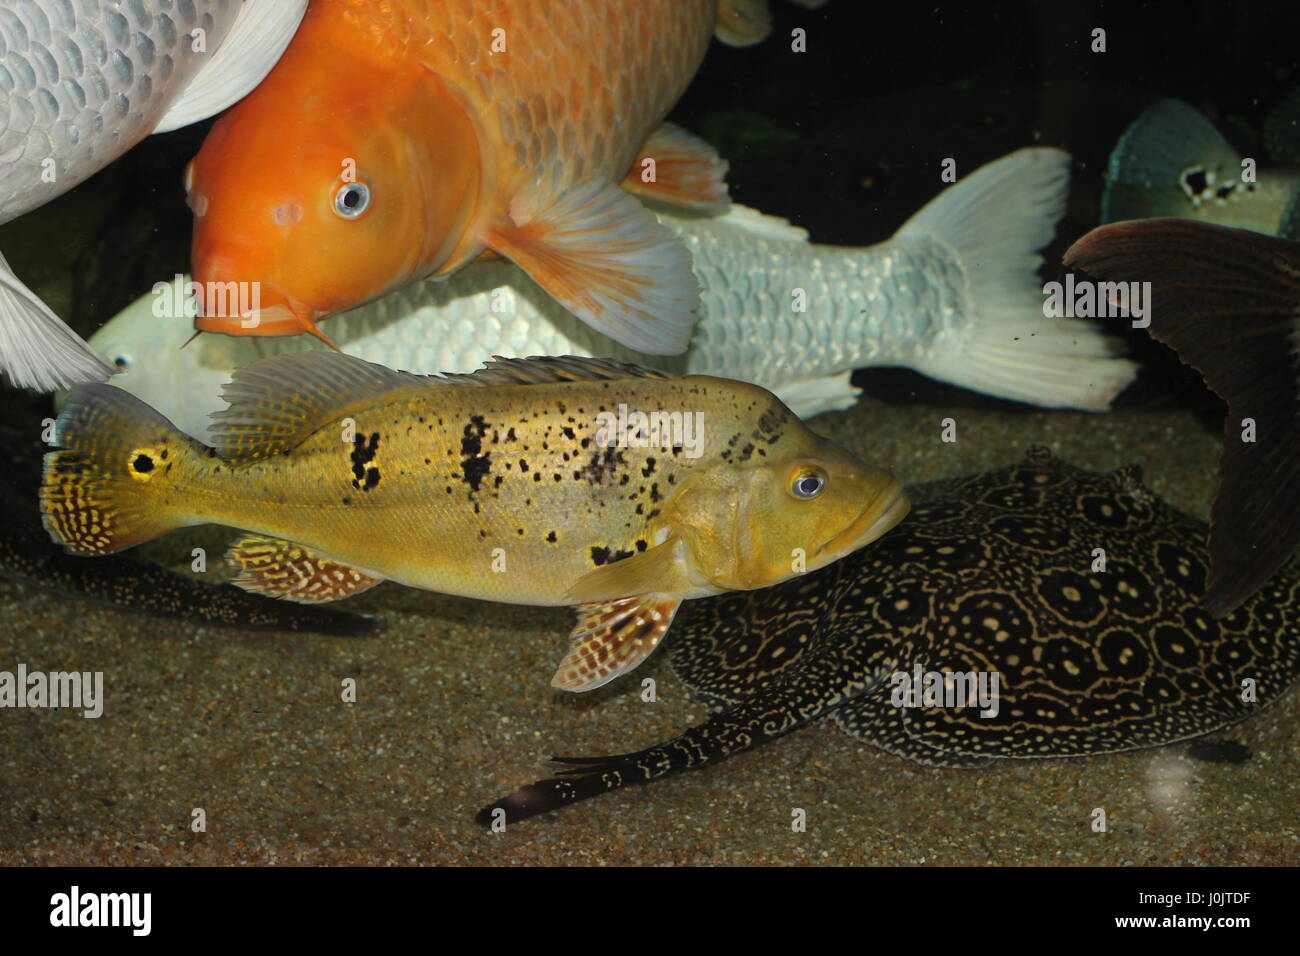 When there are a lot of fish in the aquarium Stock Photo